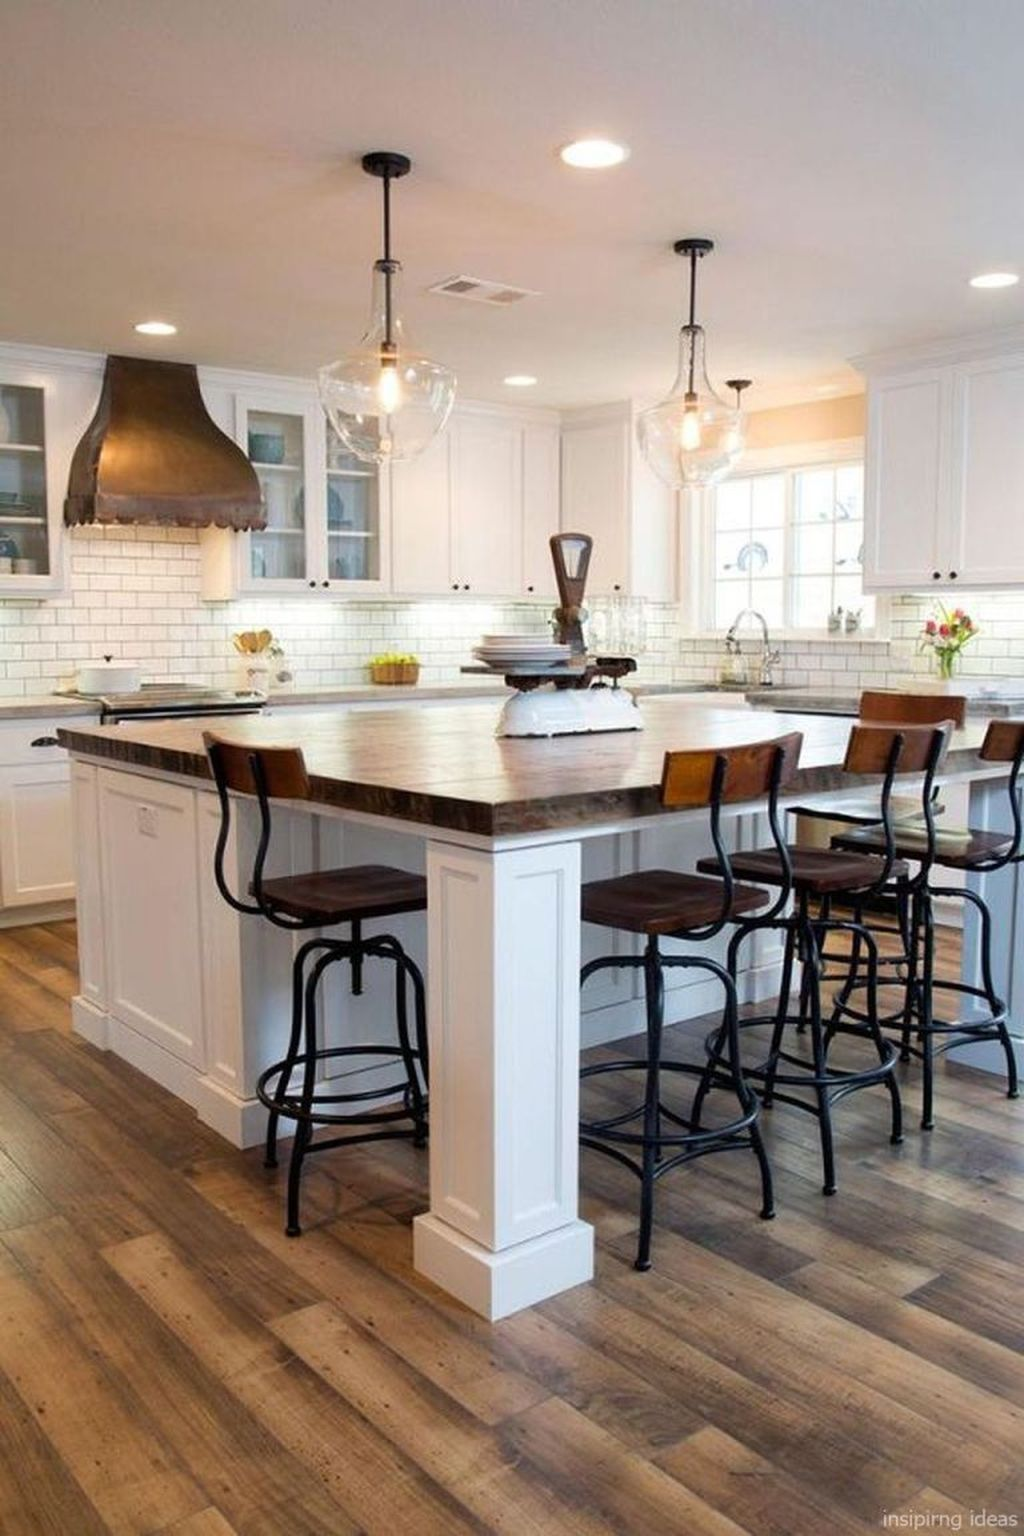 15 Chic Farmhouse Kitchen Design And Decorating Ideas For Fun Cooking Decor It S Traditional Small Kitchens Farmhouse Kitchen Design Home Decor Kitchen